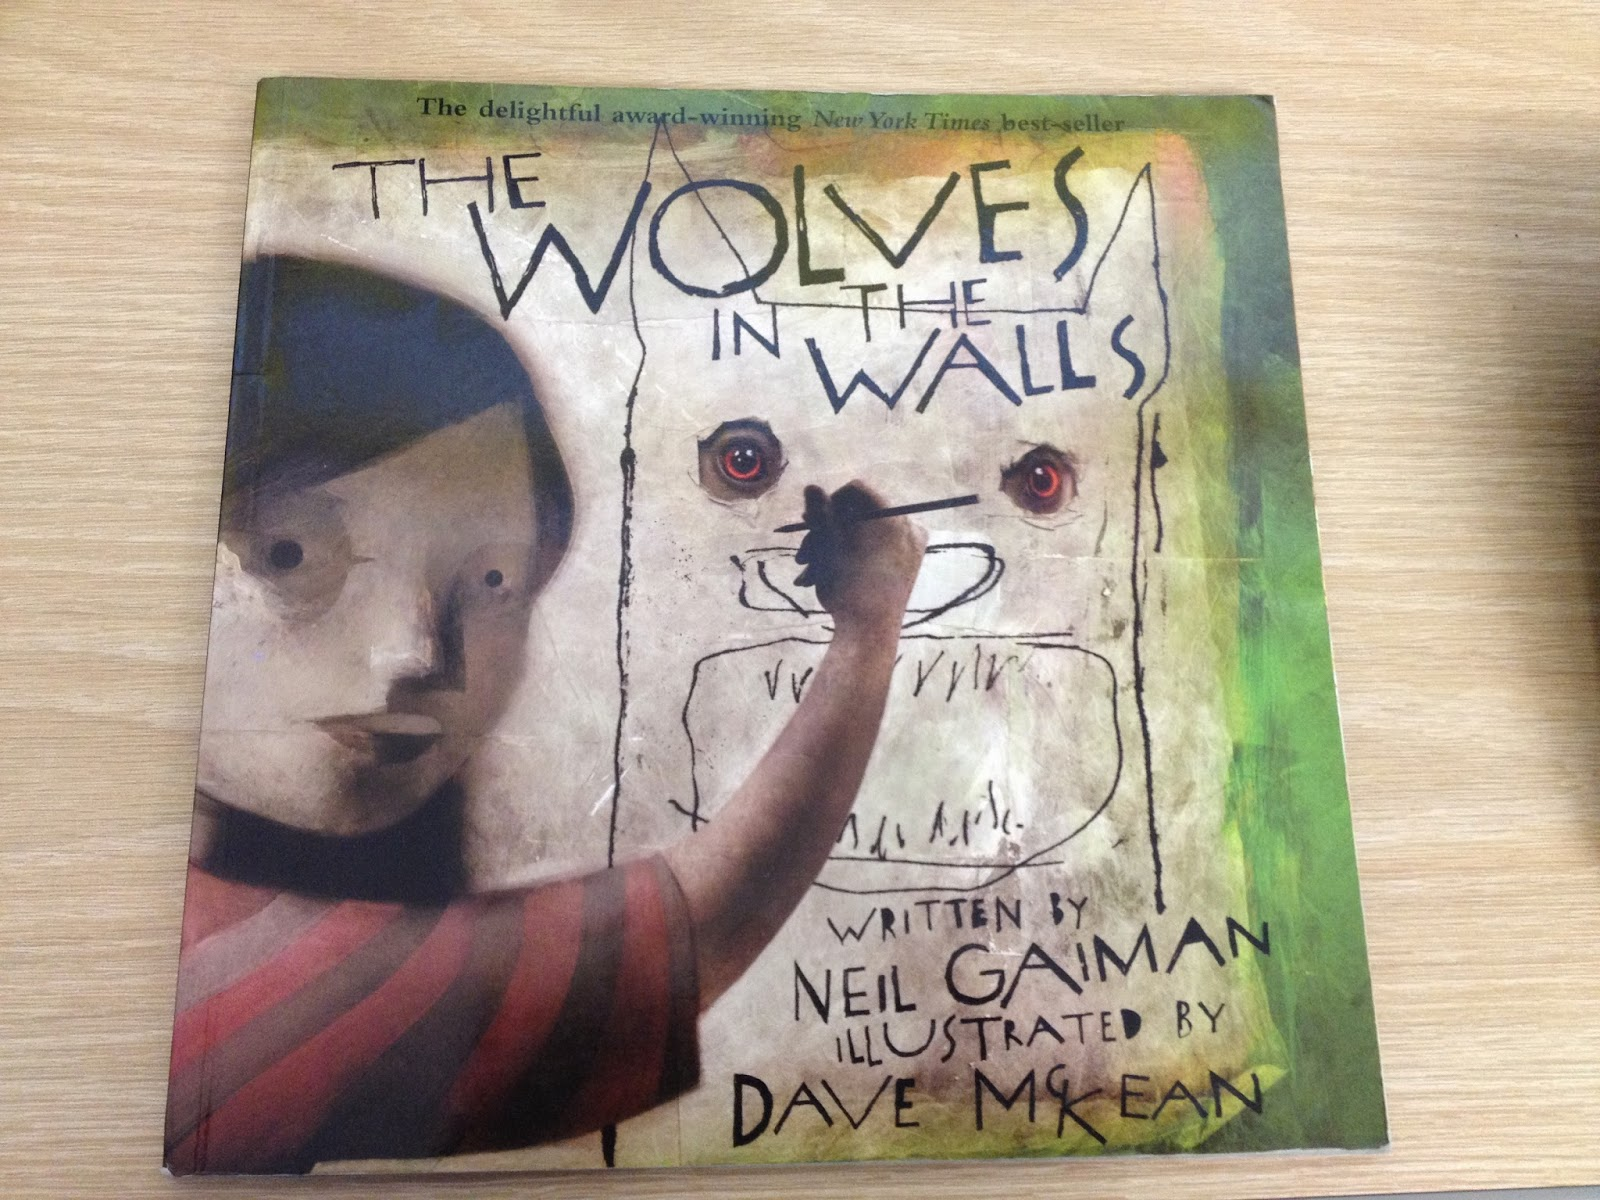 an analysis of wolves in the walls by neil gaiman Monster in neil gaiman's the graveyard book  picture book the wolves in the  walls (2003) where lucy is the only one in her family who is aware  in itself  does not exclude anything from the analysis, but rather broadens.